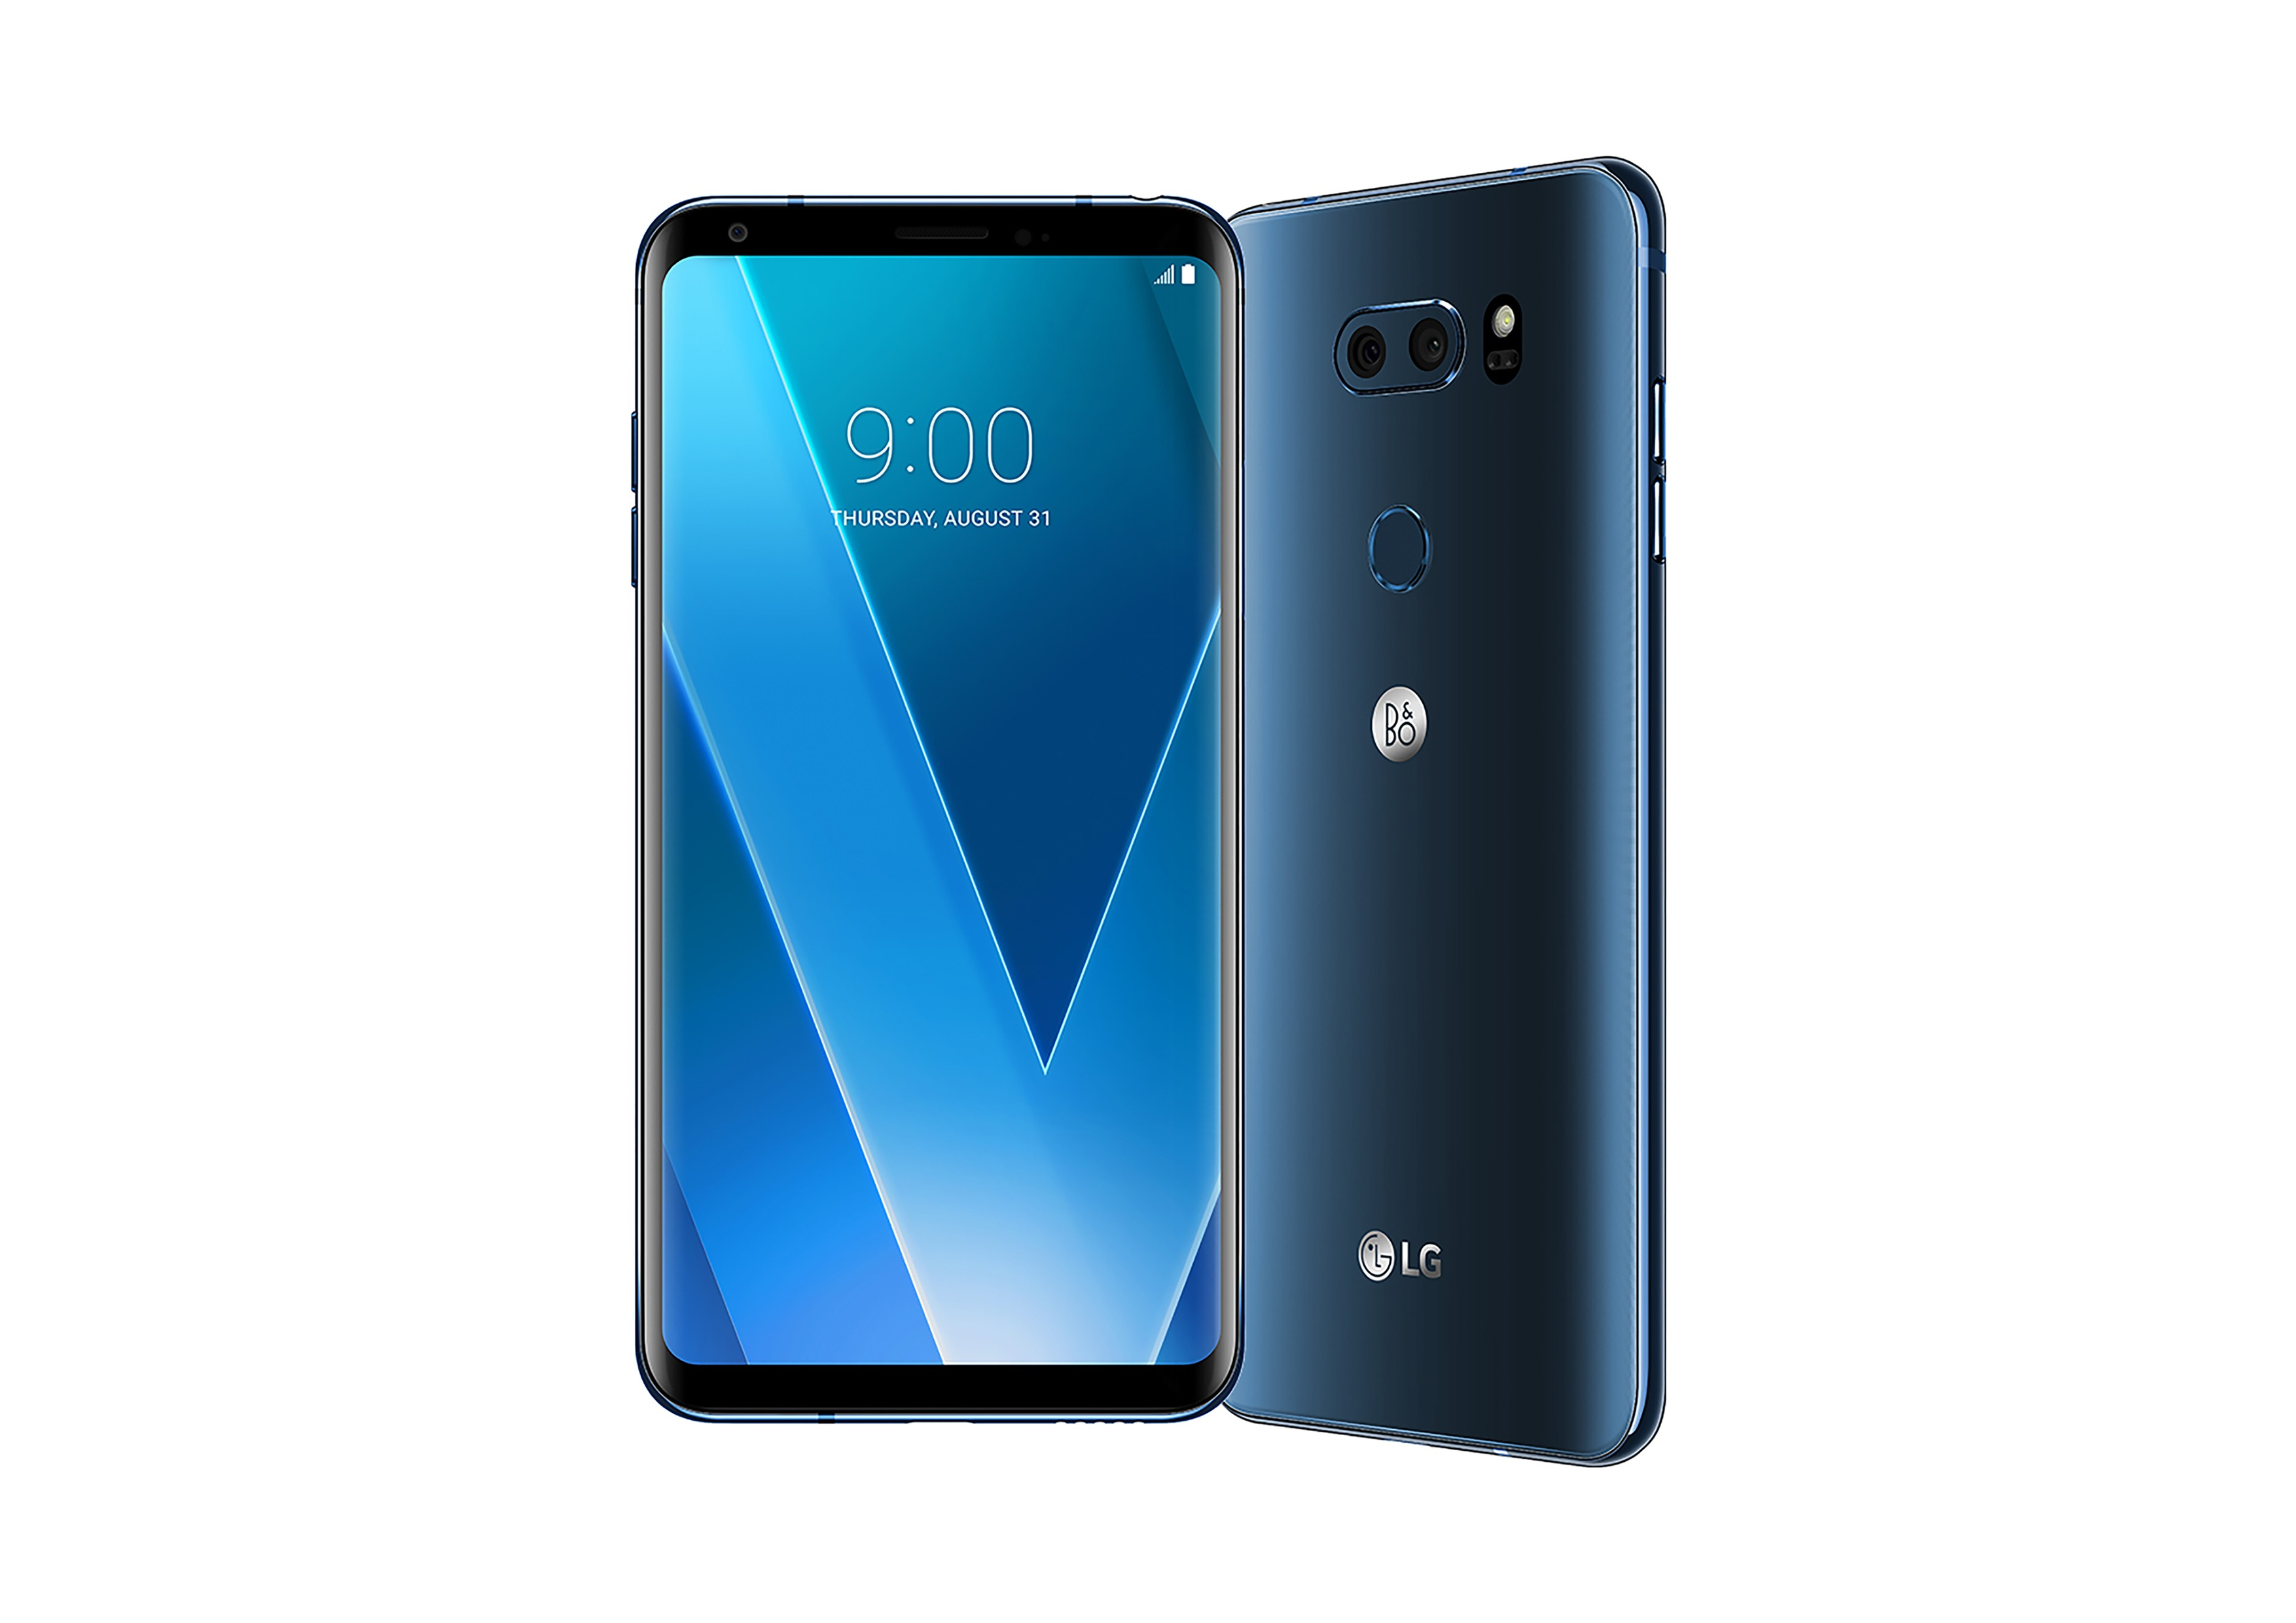 LG V30: How to Save $300 on the Purchase of the Latest Flagship?